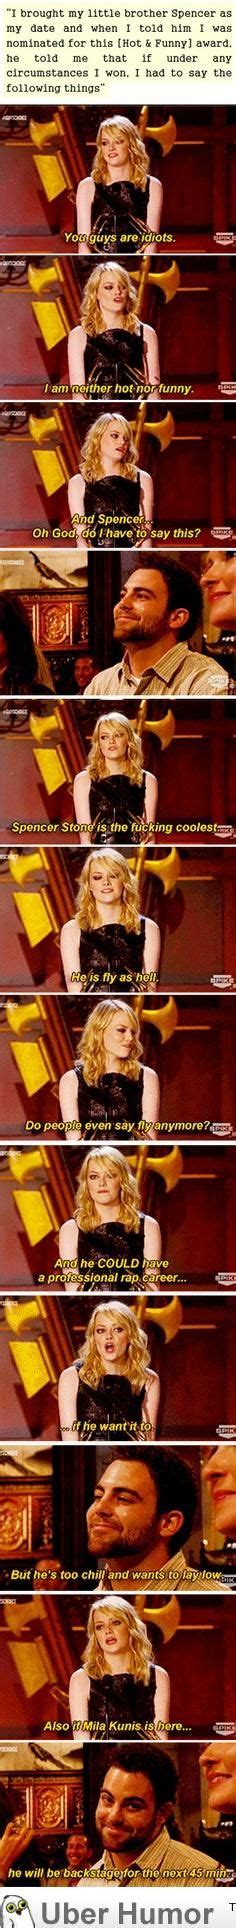 emma stone sister emma stone is by far the best sister ever his face